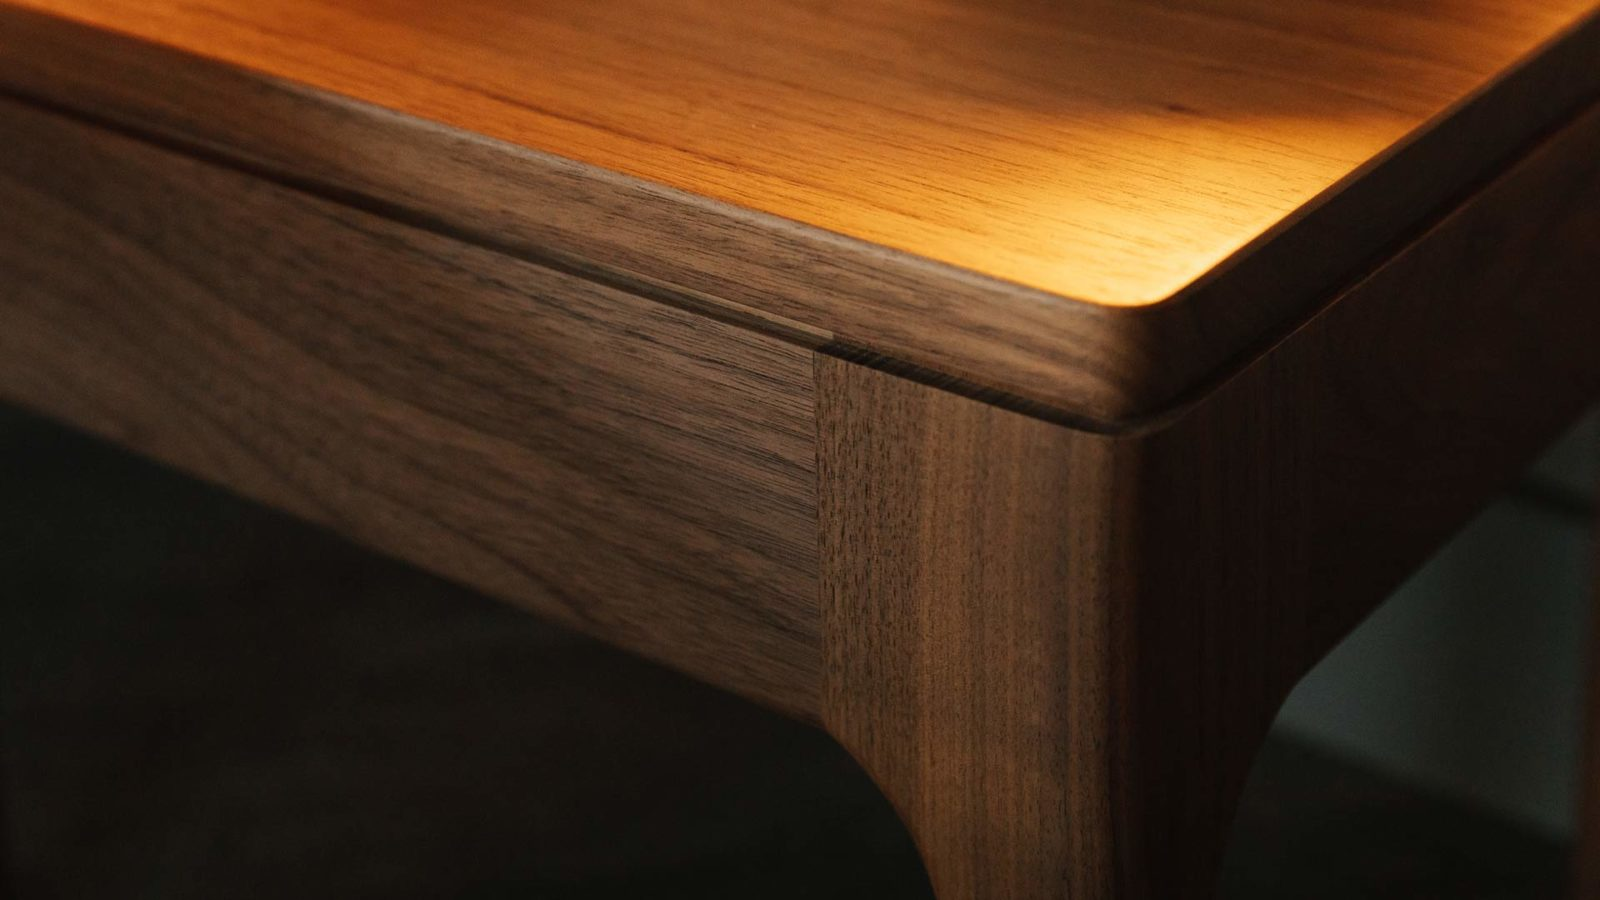 Detail view of our walnut solid wood hand made Camden table